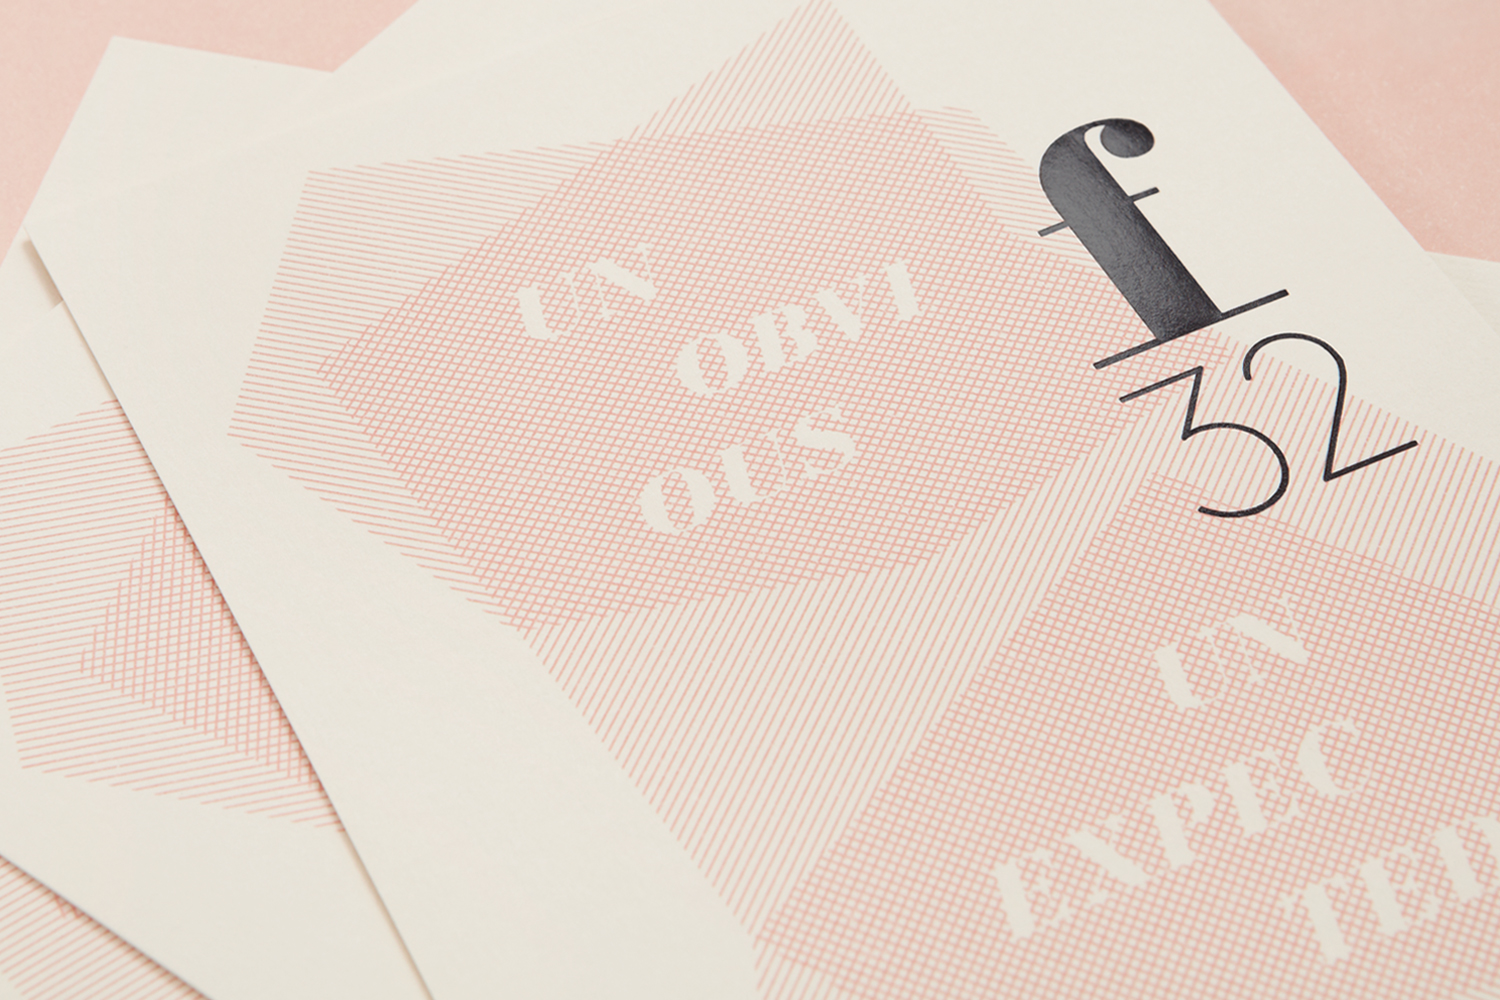 Brand identity and block foiled postcards by Blok for LA based trend-watching company f32